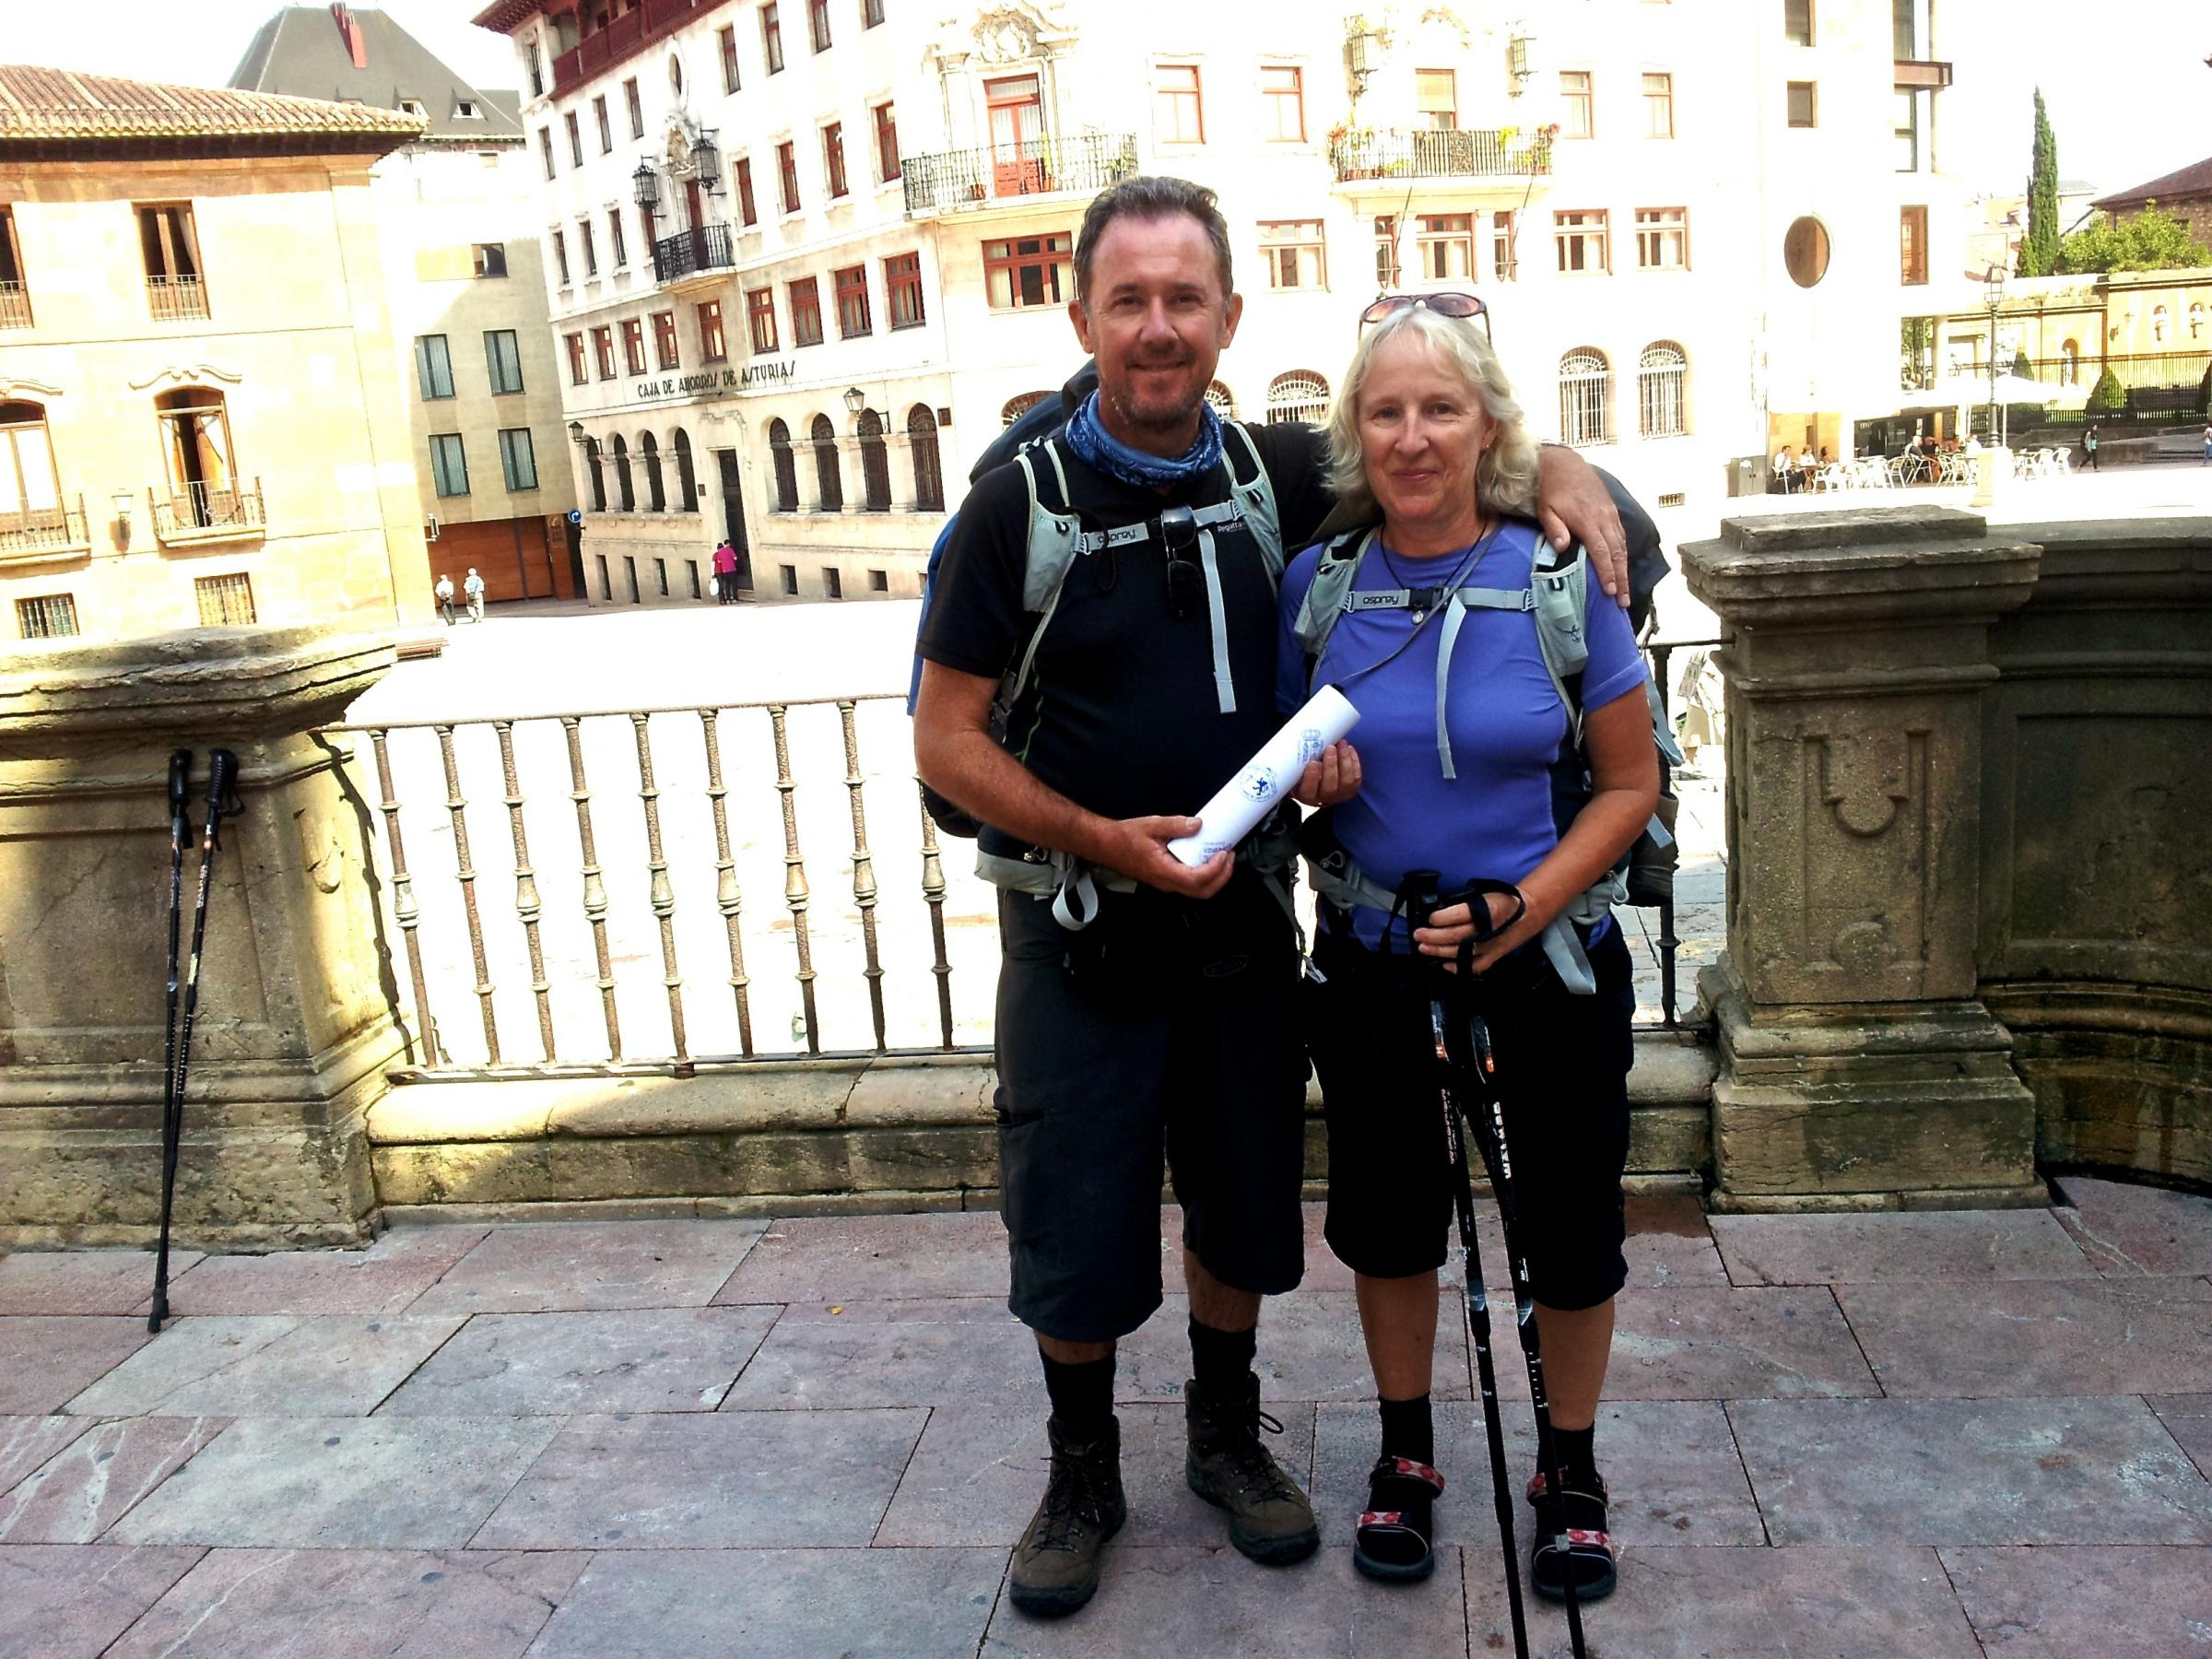 Former Rednock teacher John Conway and his wife Helen are set to take part in the 550km European Peace Walk as part of commemorations of the F